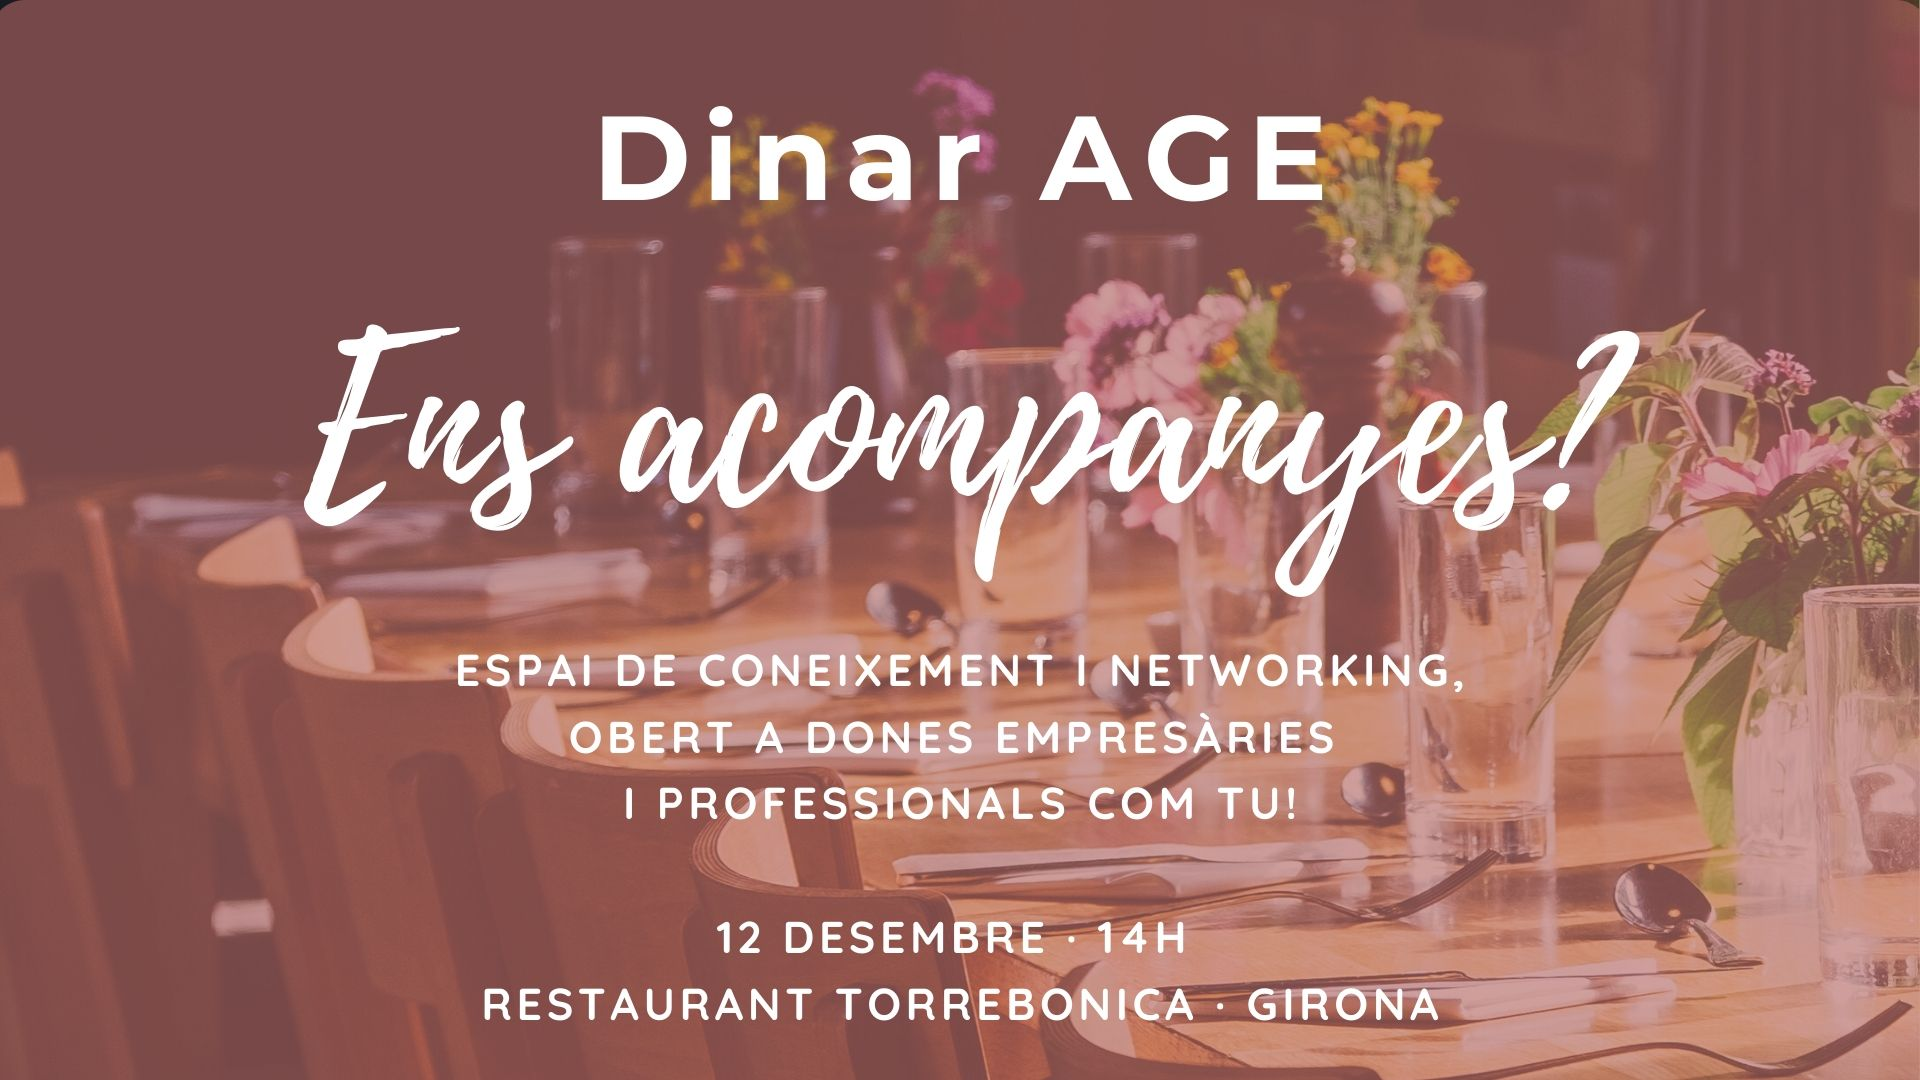 Dinar i networking AGE